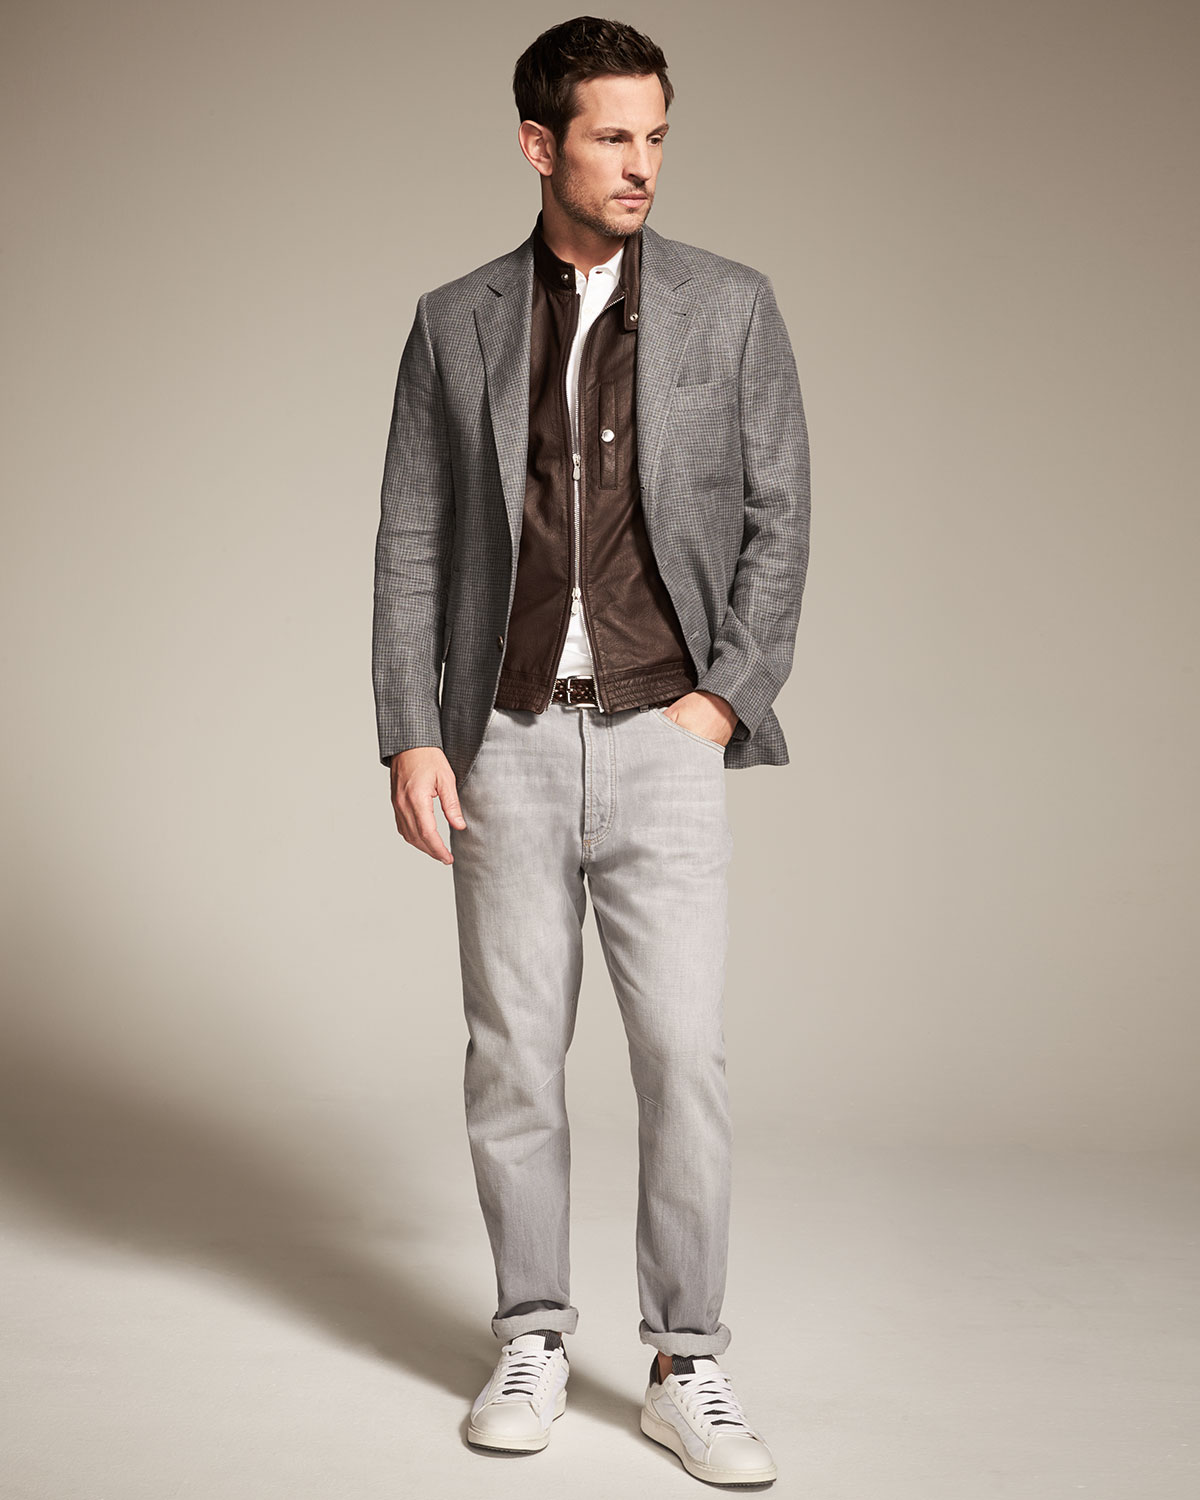 Men's fashion brands online